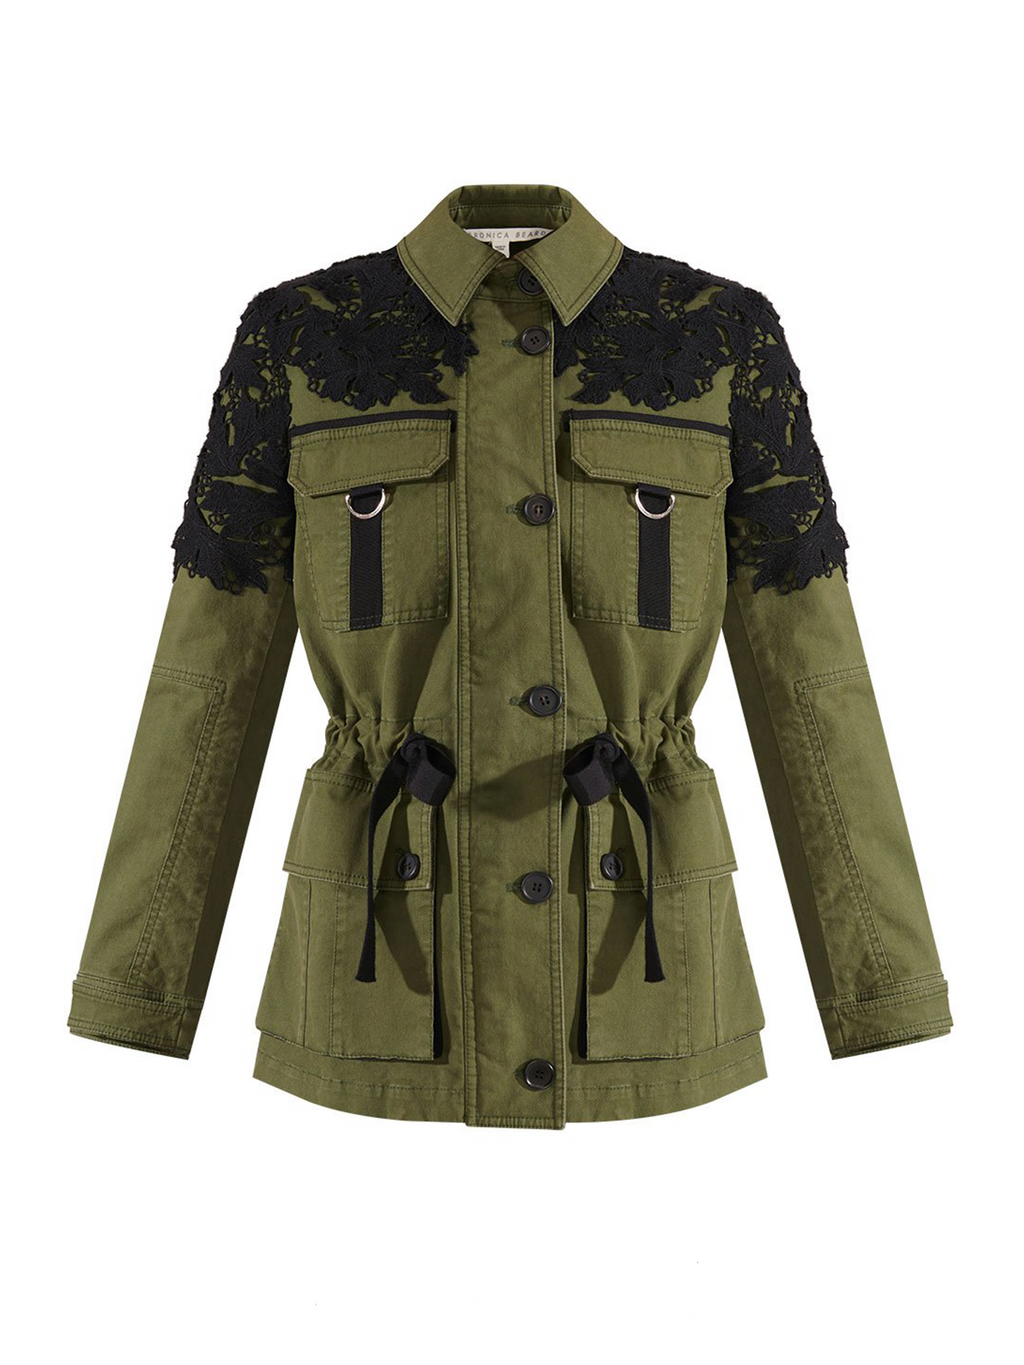 Veronica Beard Heritage Military Jacket